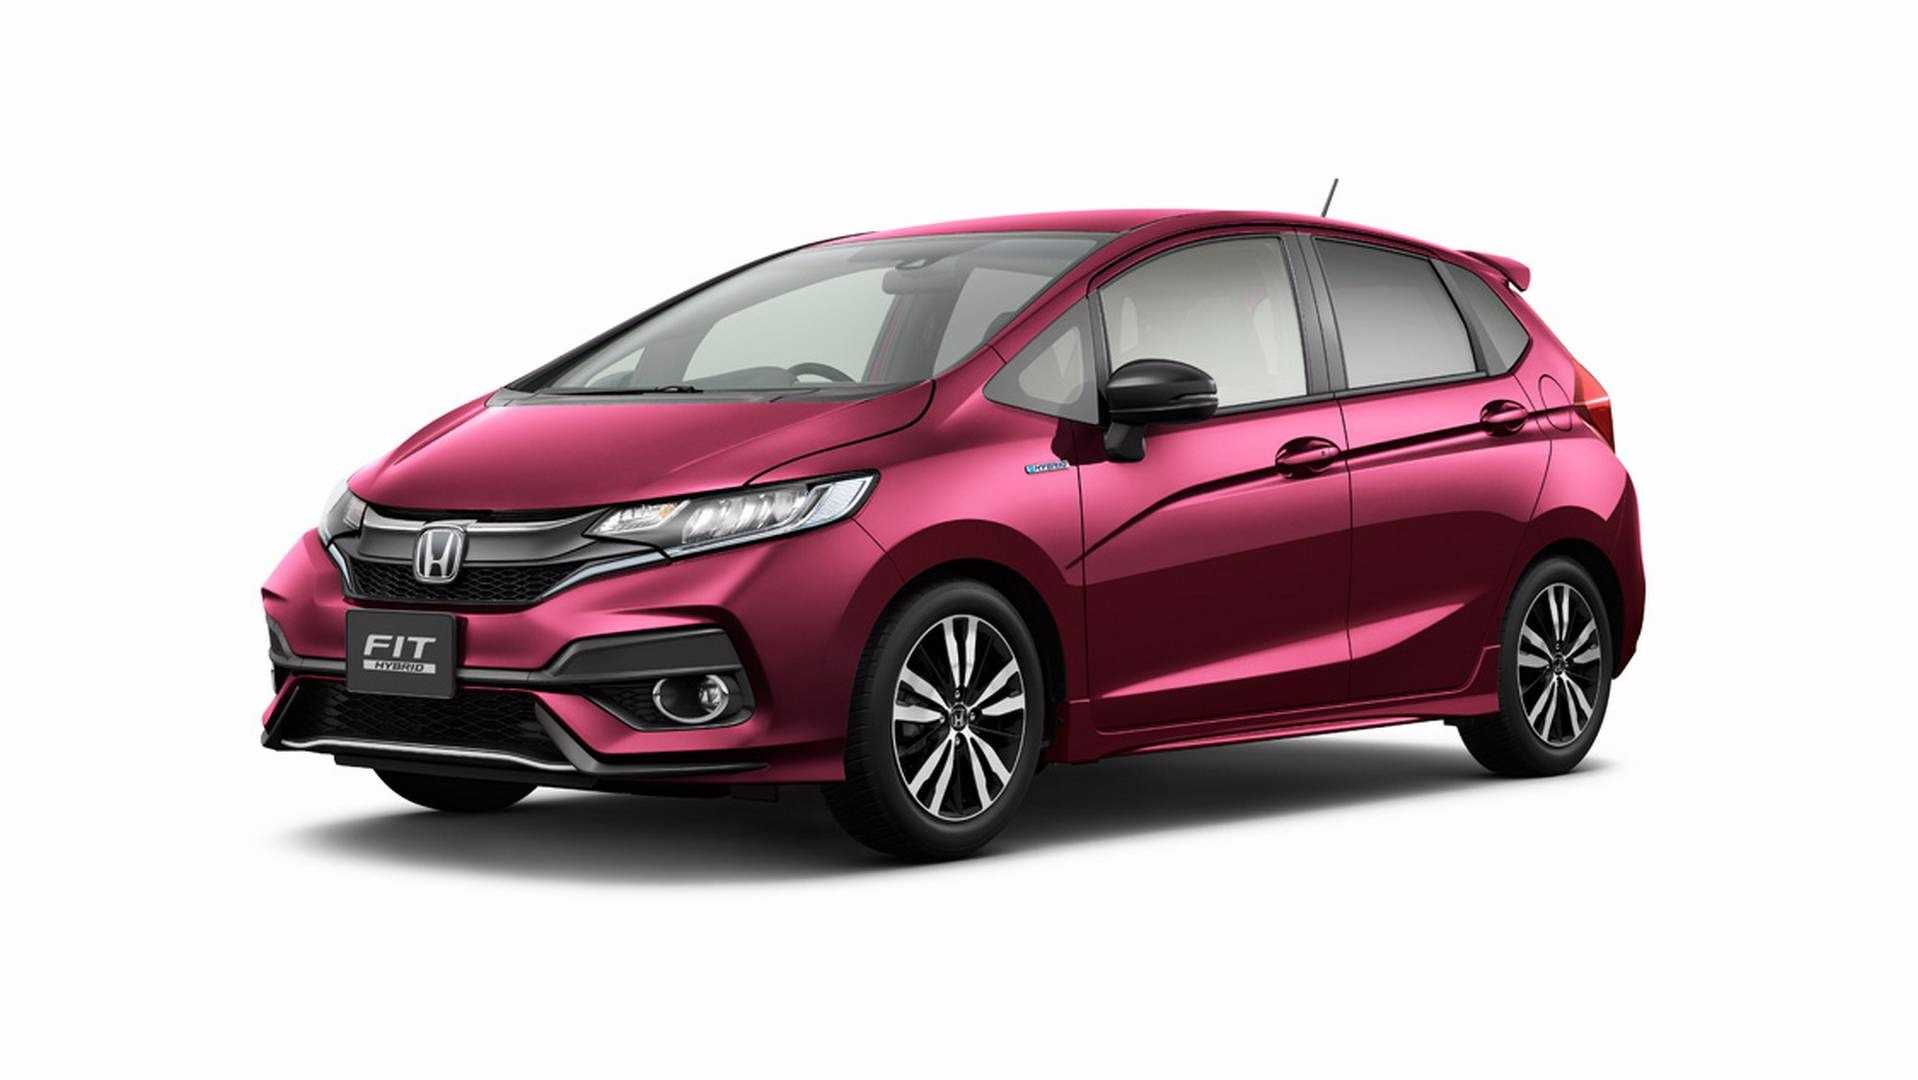 2018_Honda_Jazz_facelift_01